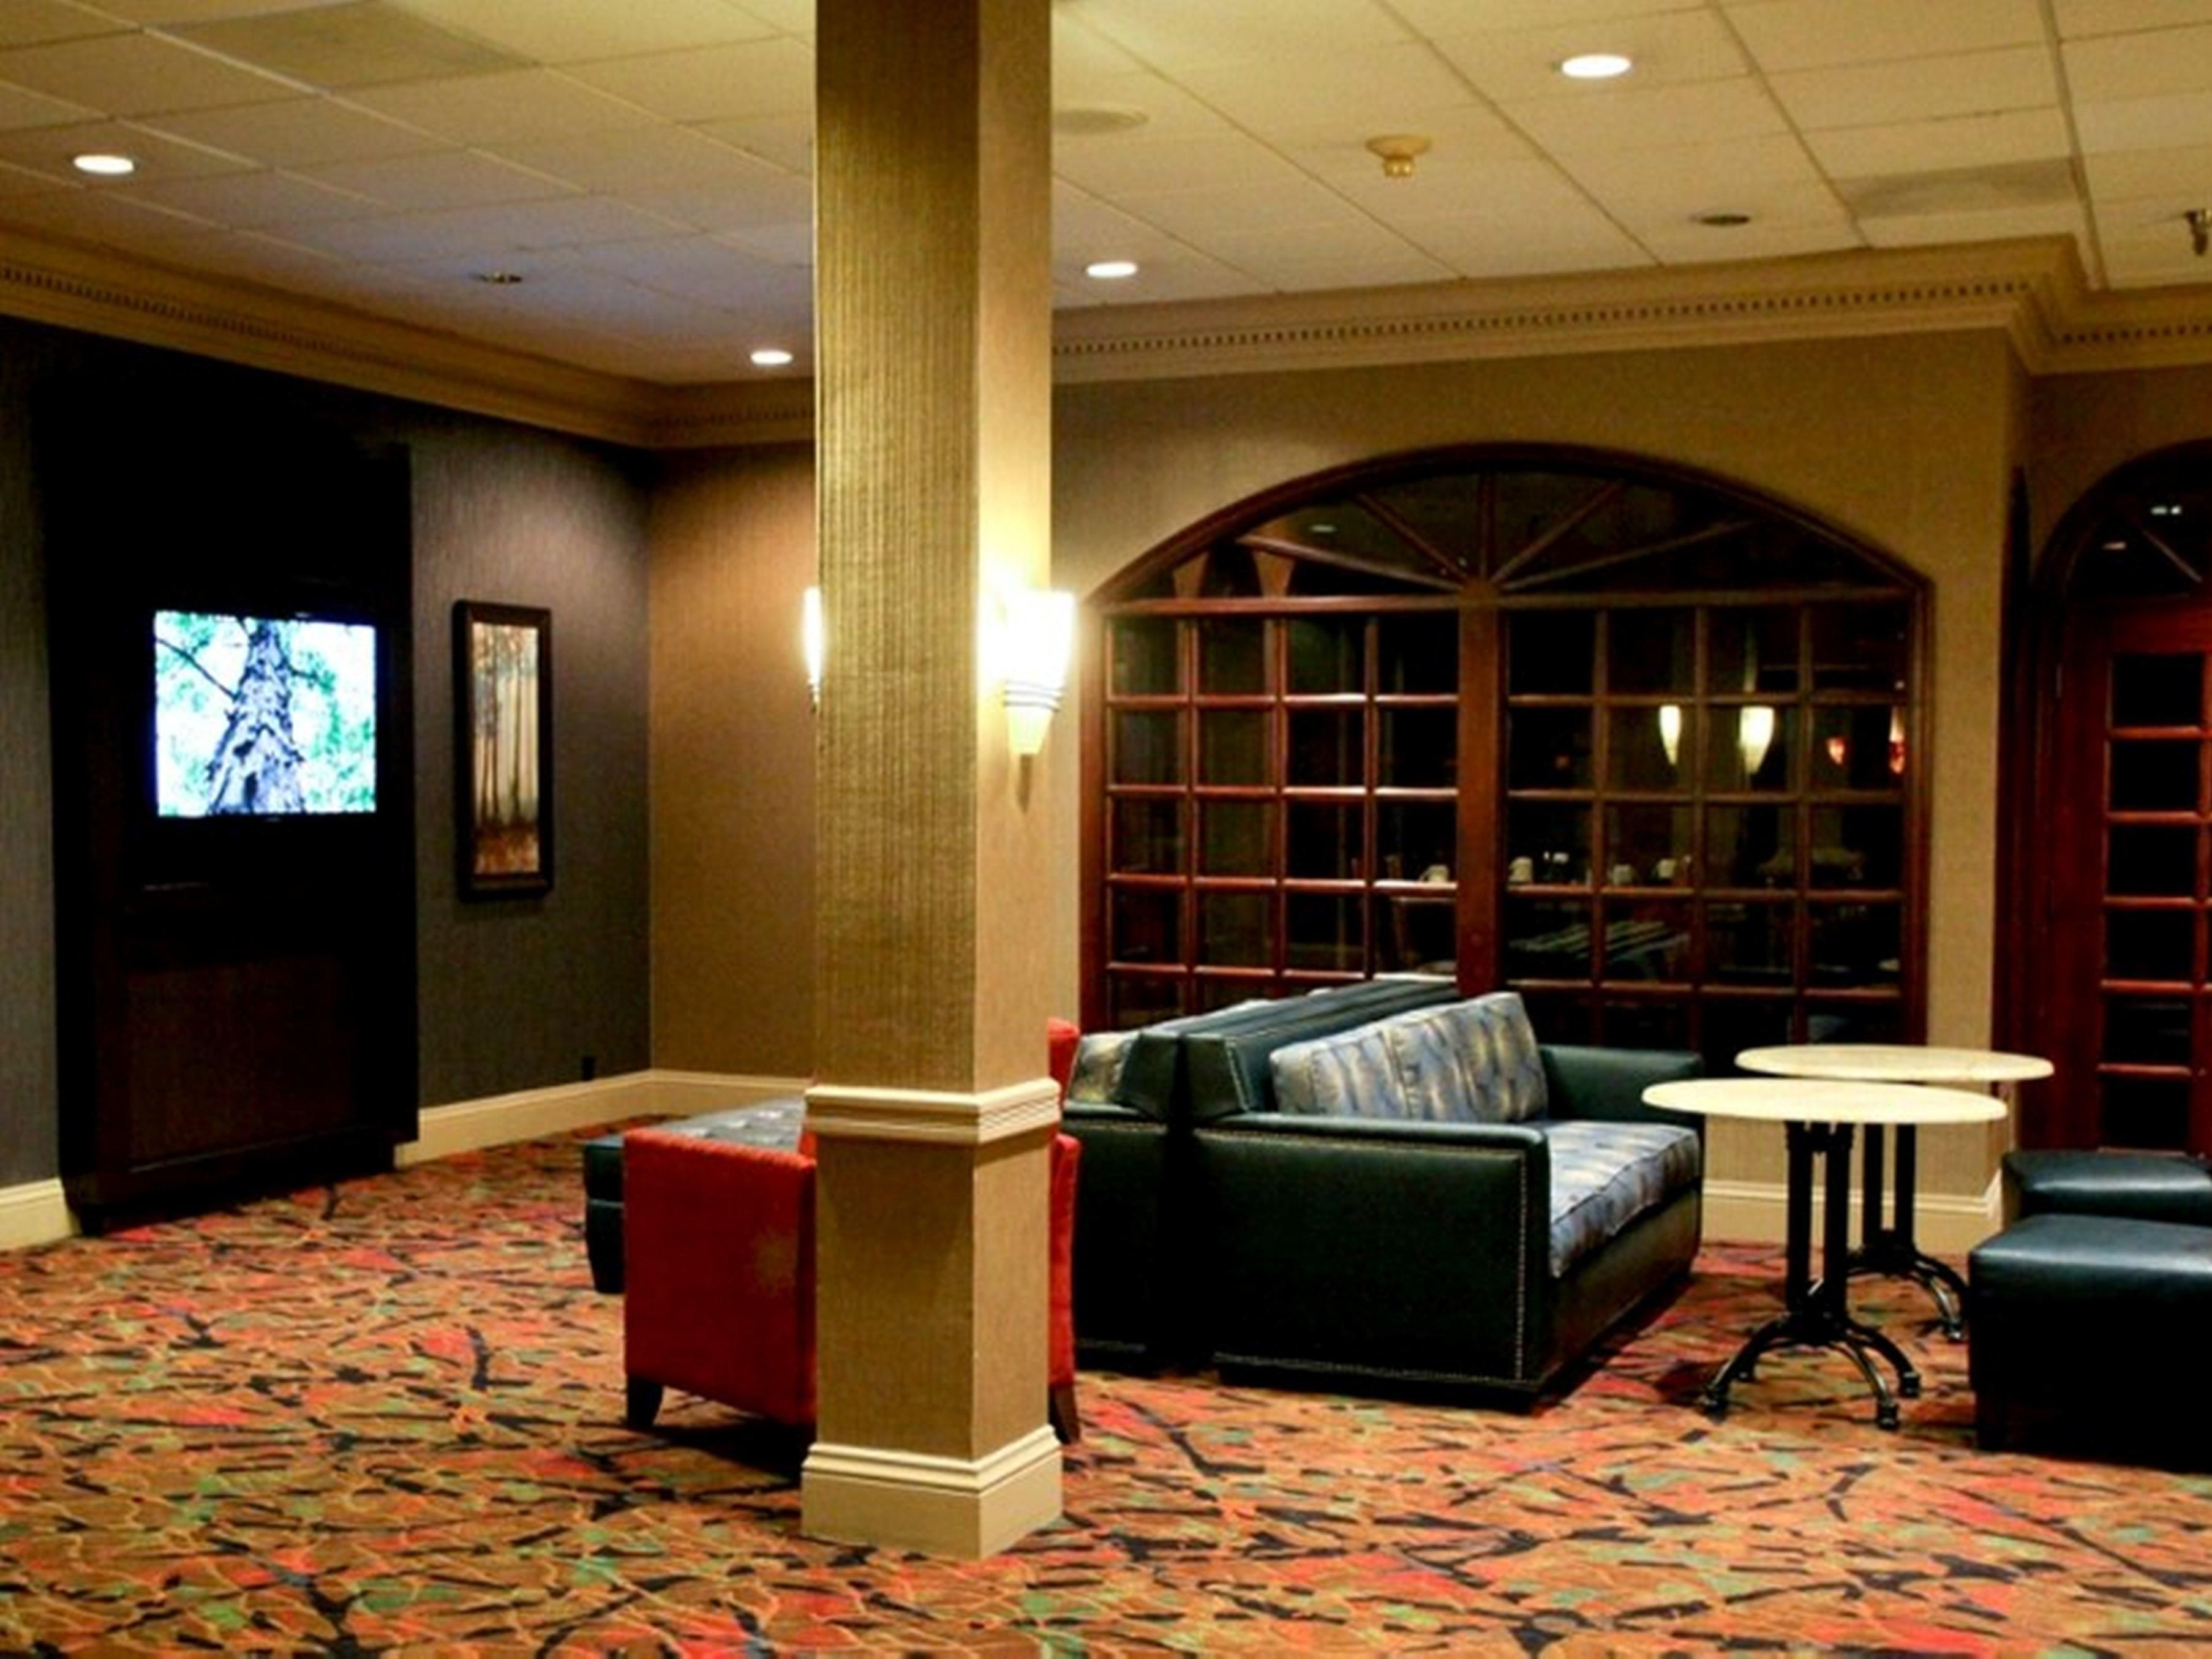 The TV Lounge features satellite TV and plenty of seating